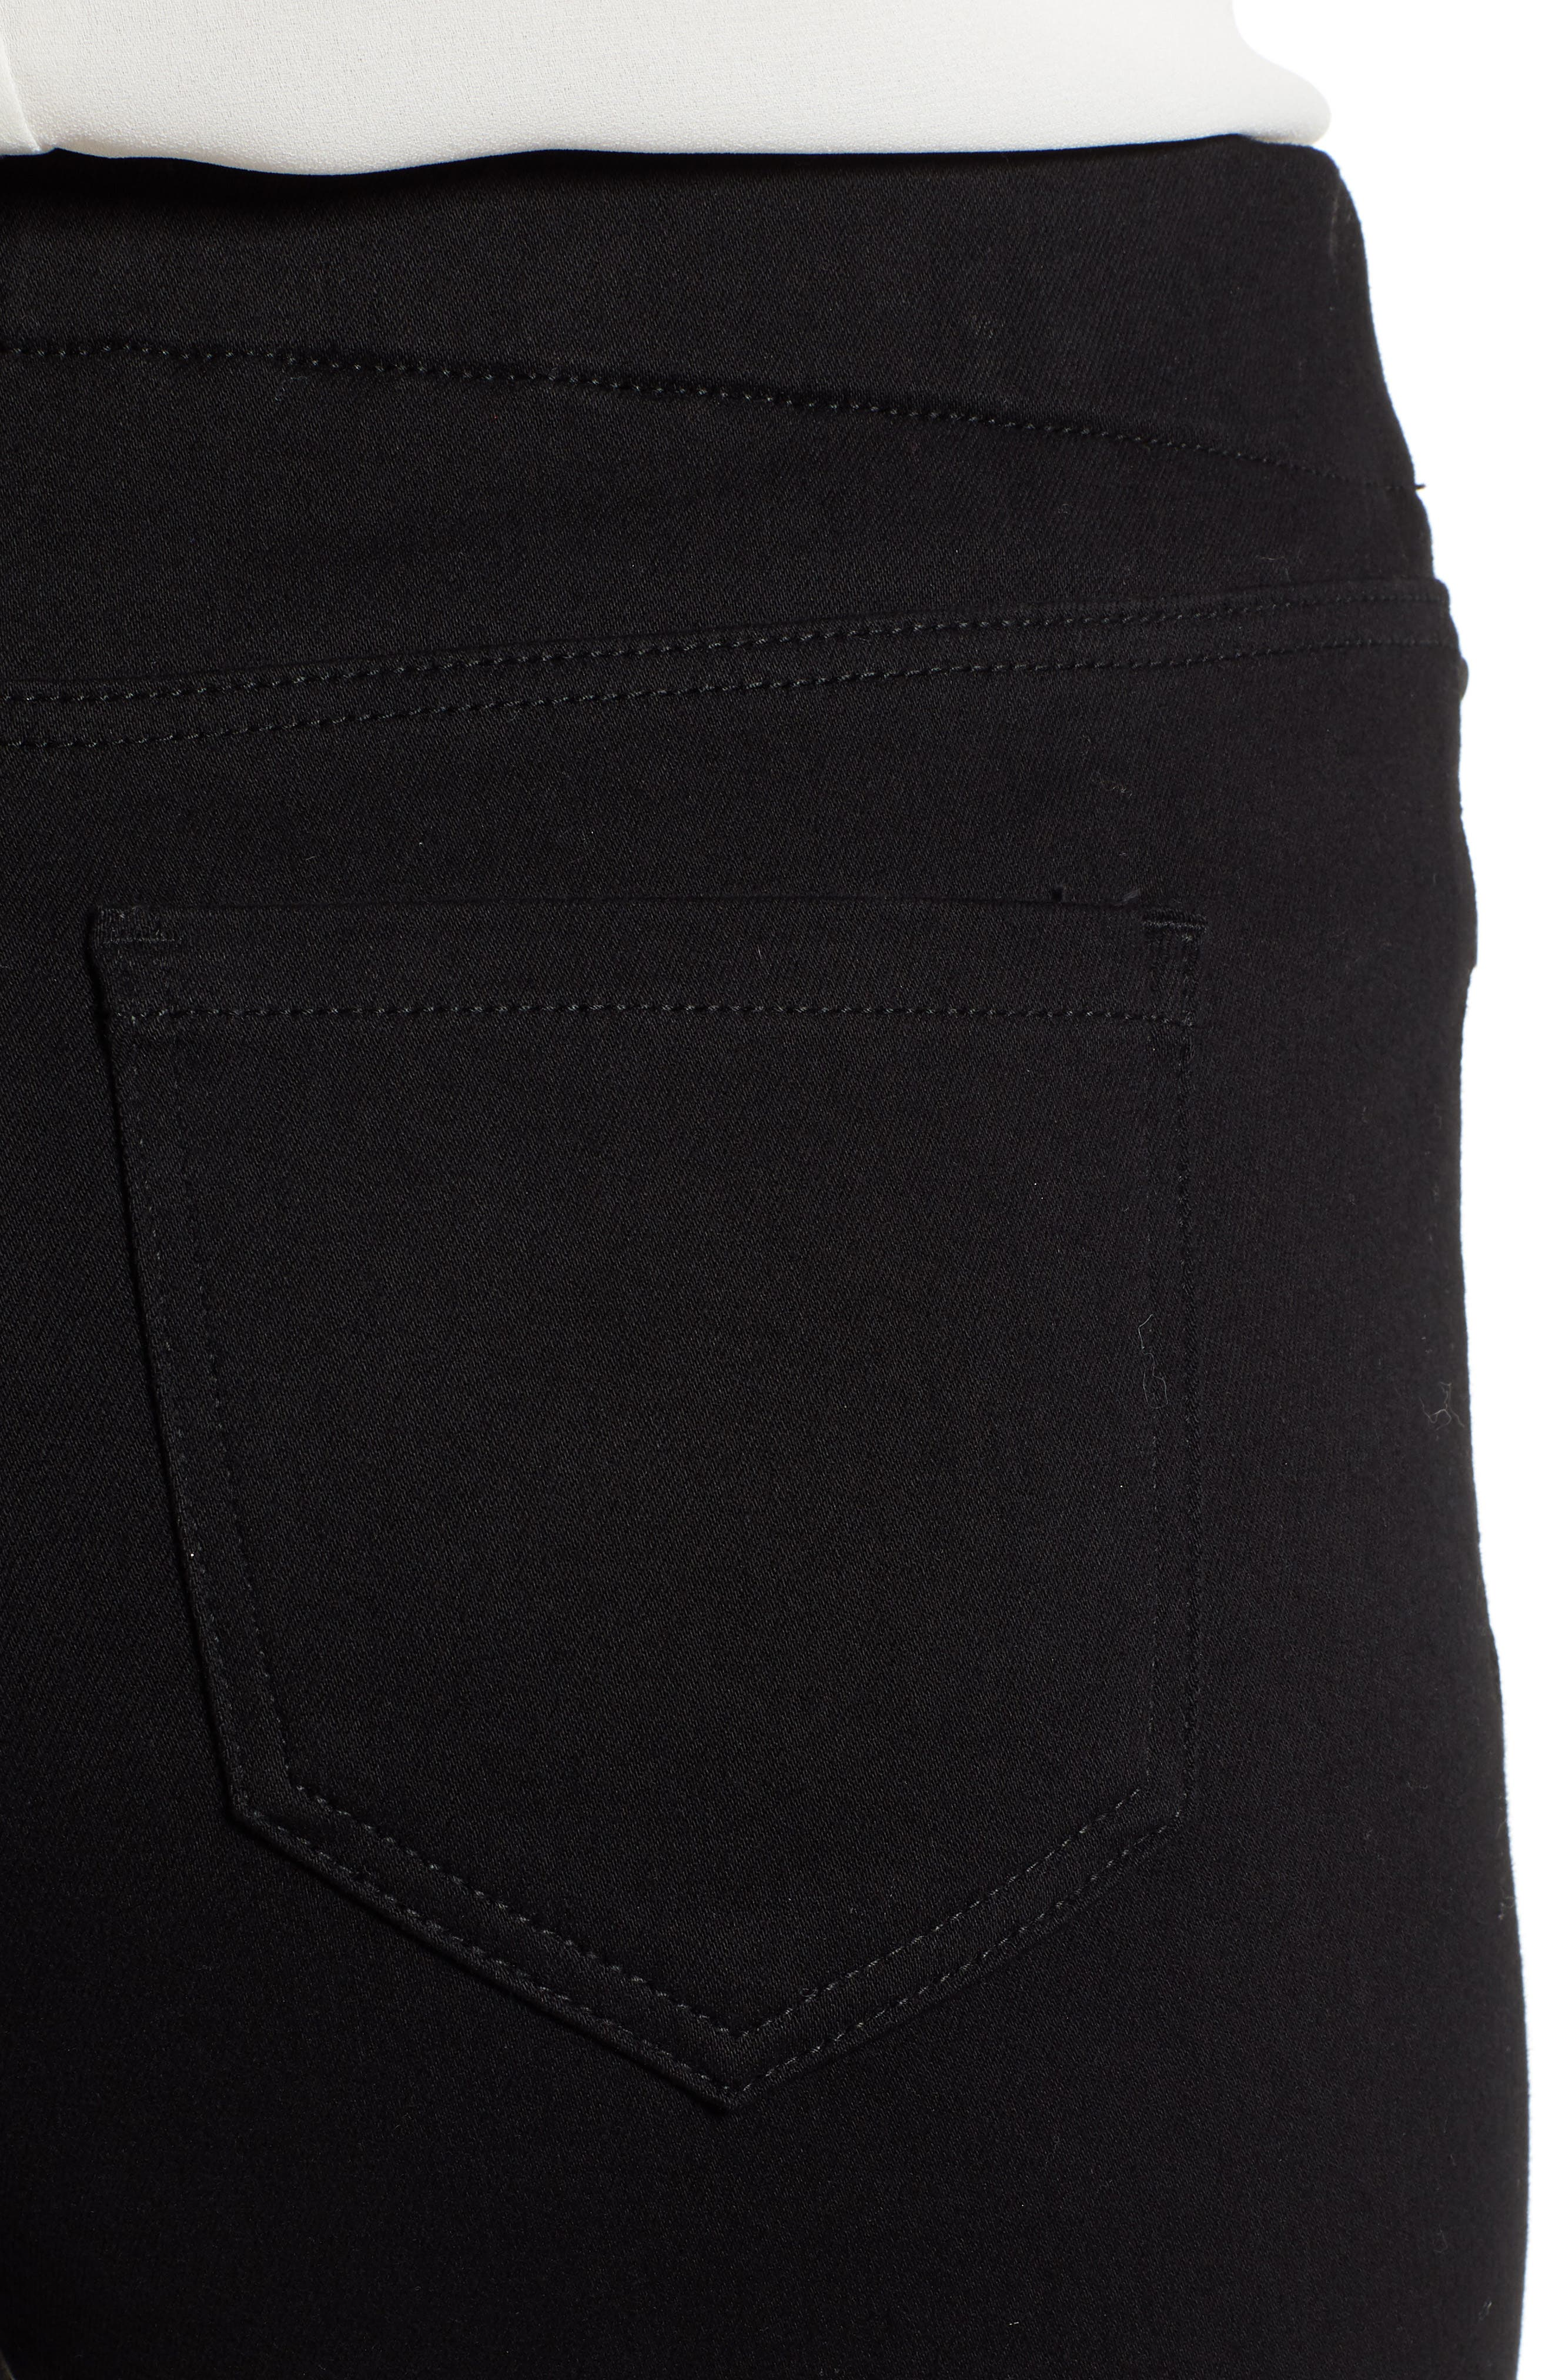 Chloe Pull-On Stretch Skinny Ankle Jeans,                             Alternate thumbnail 4, color,                             BLACK RINSE